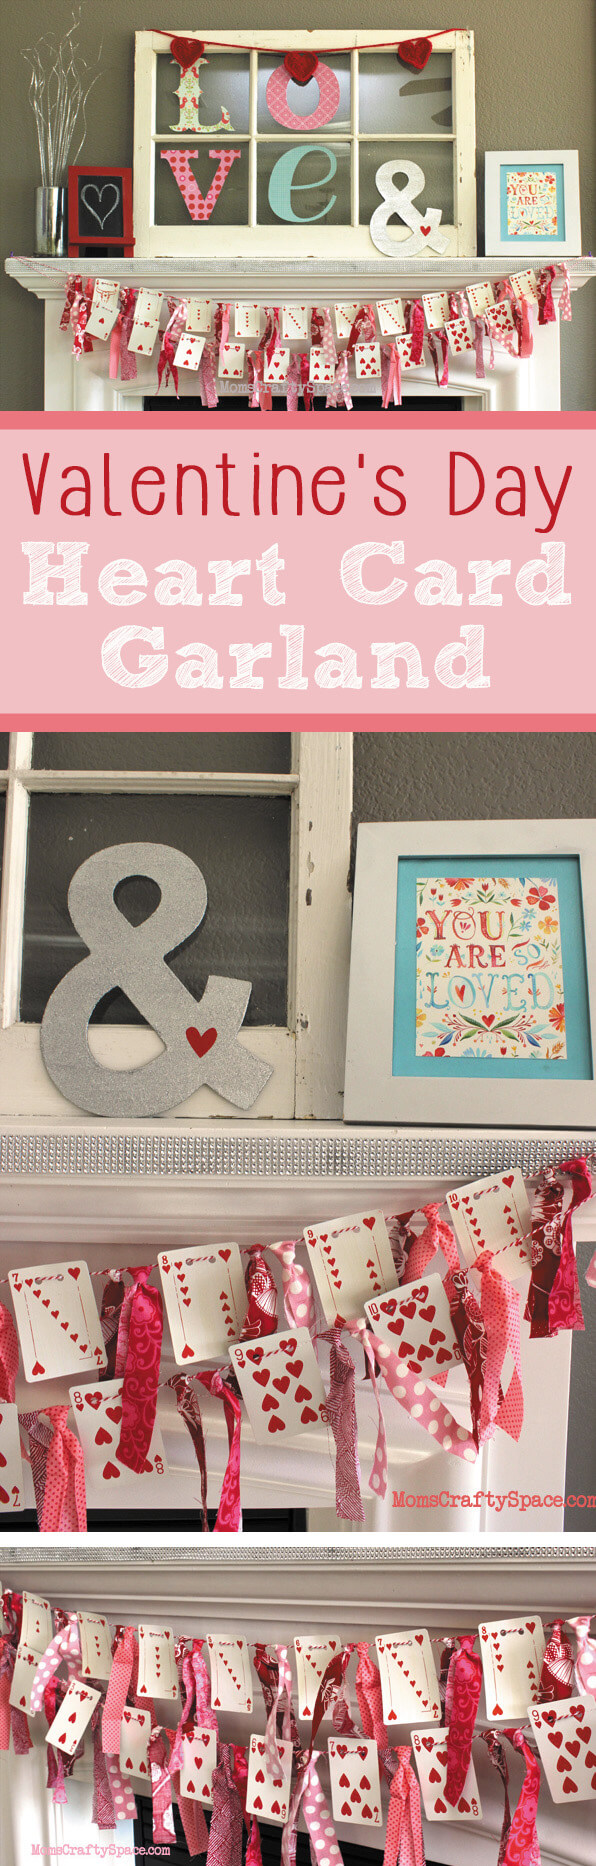 Valentine's Day Heart Playing Cards Banner Garland